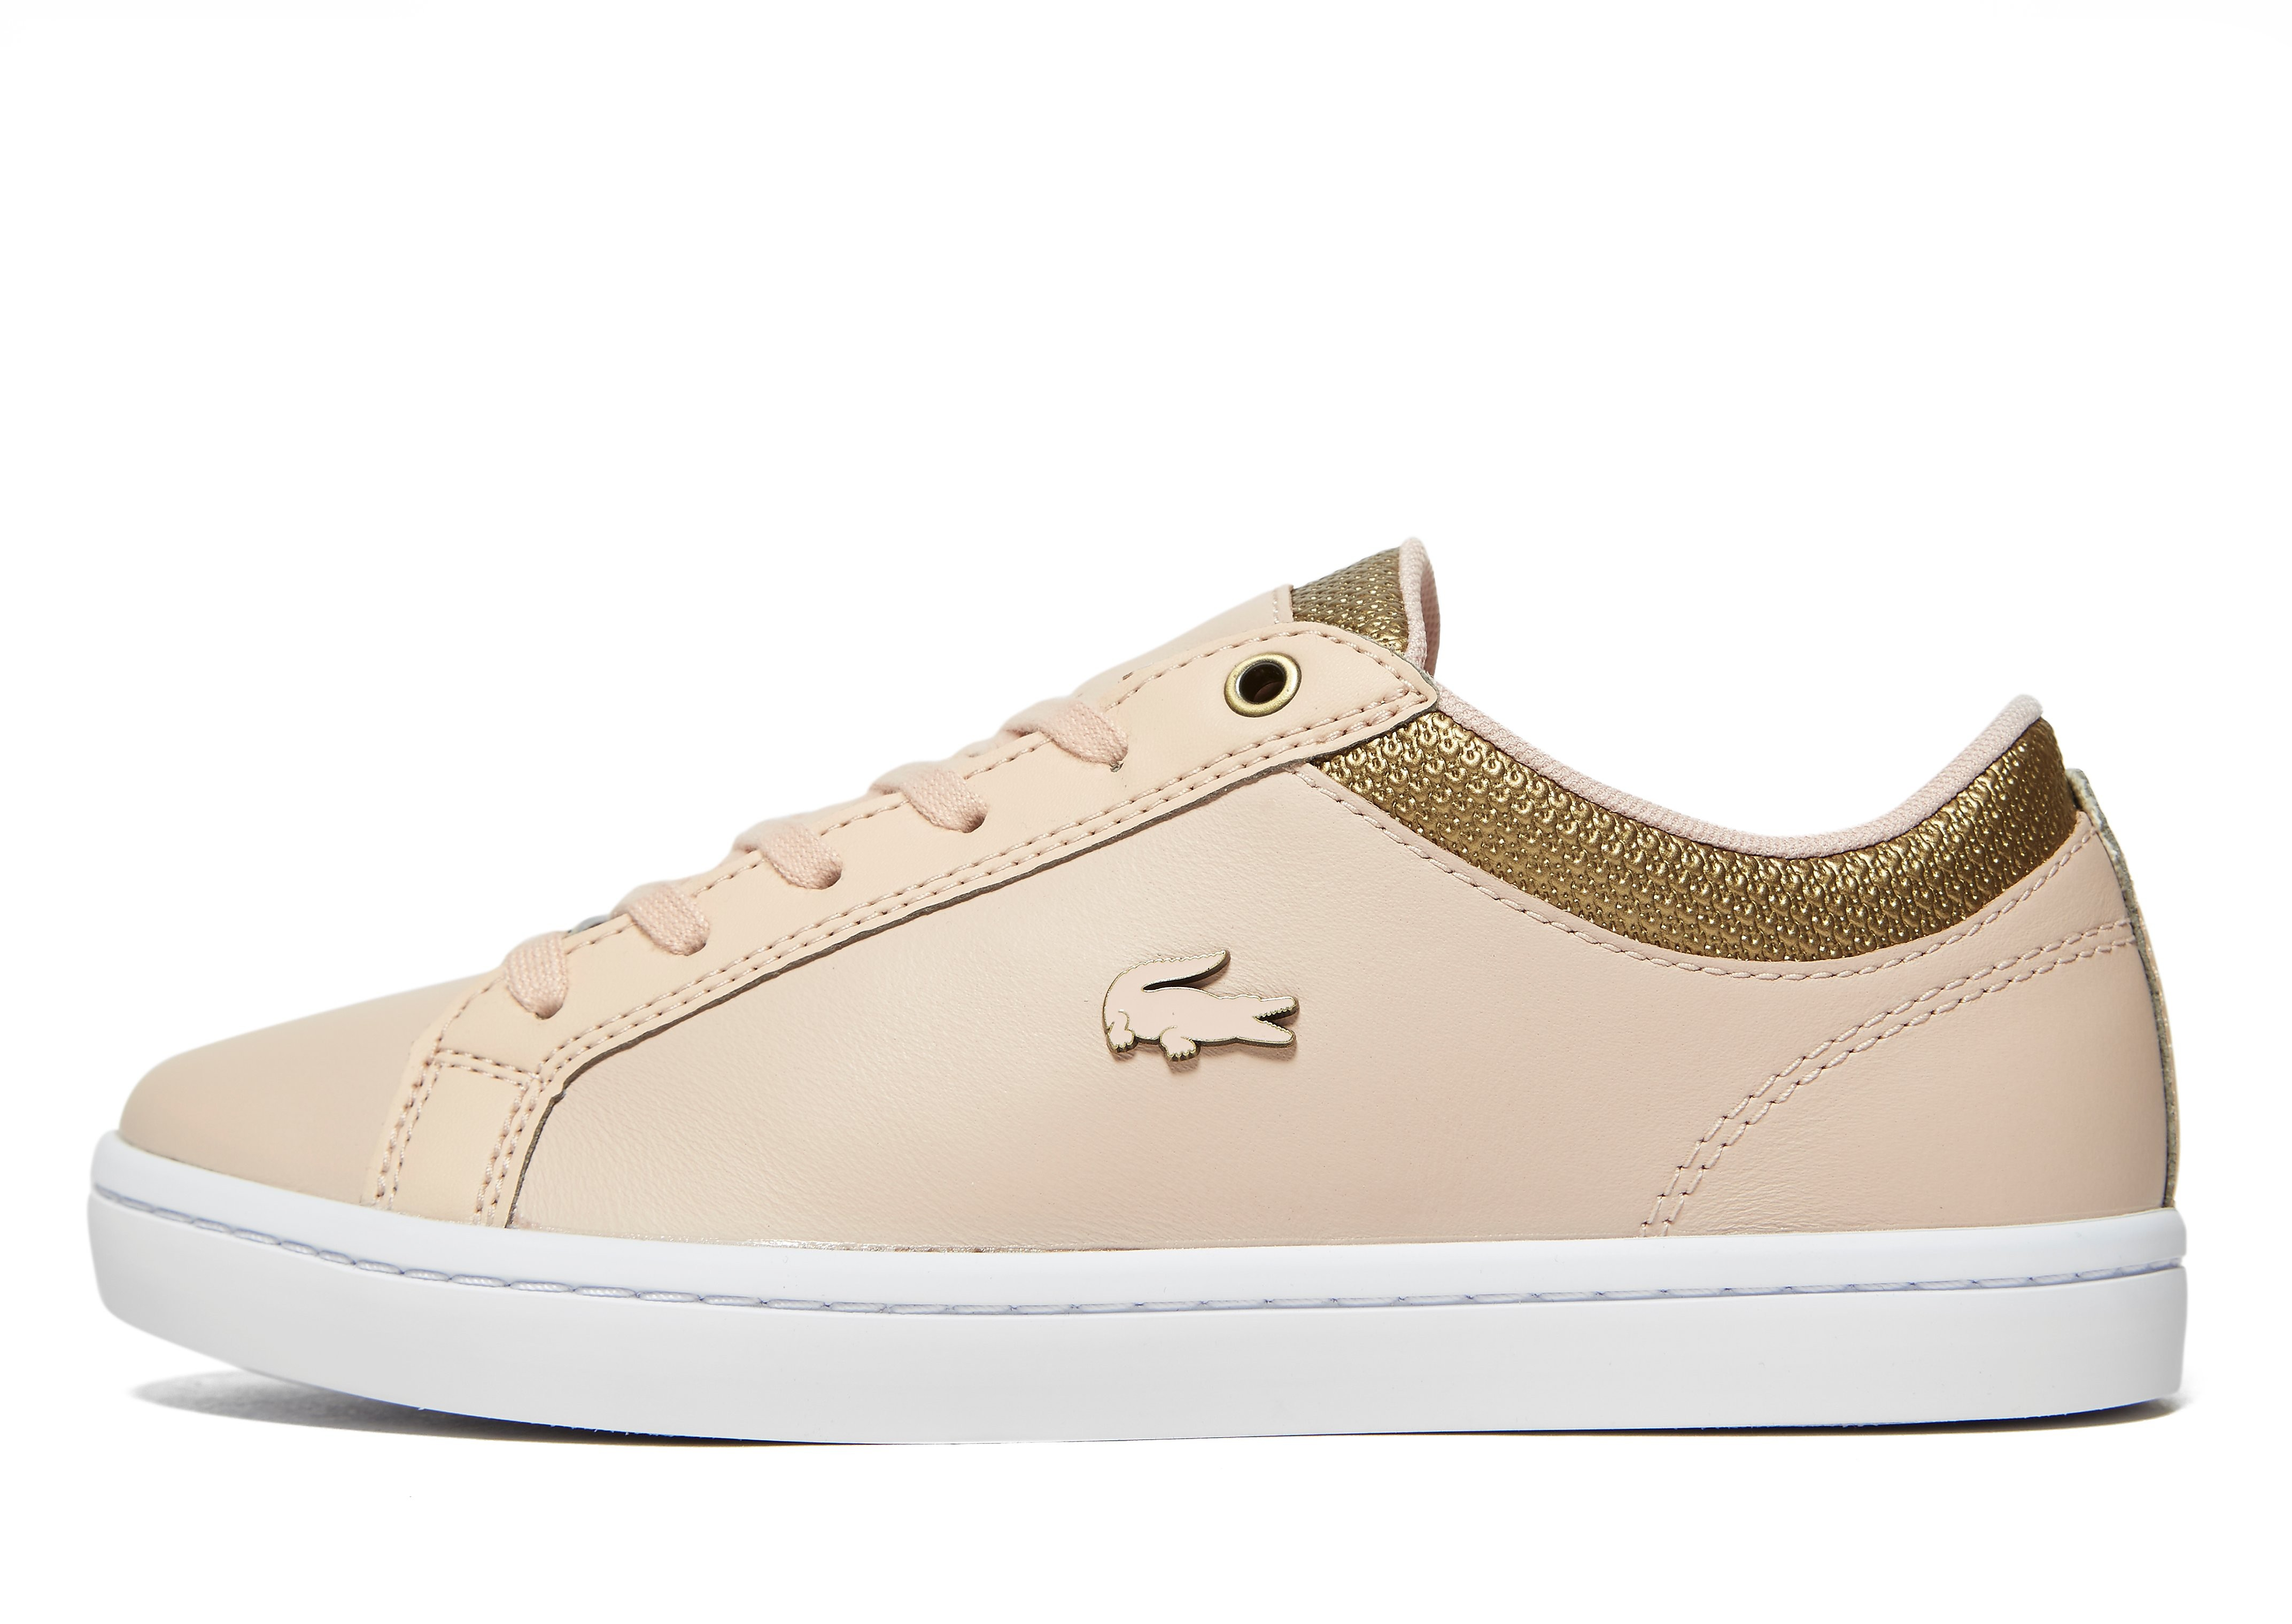 Lacoste Straightset Dames - Coral/Gold - Dames